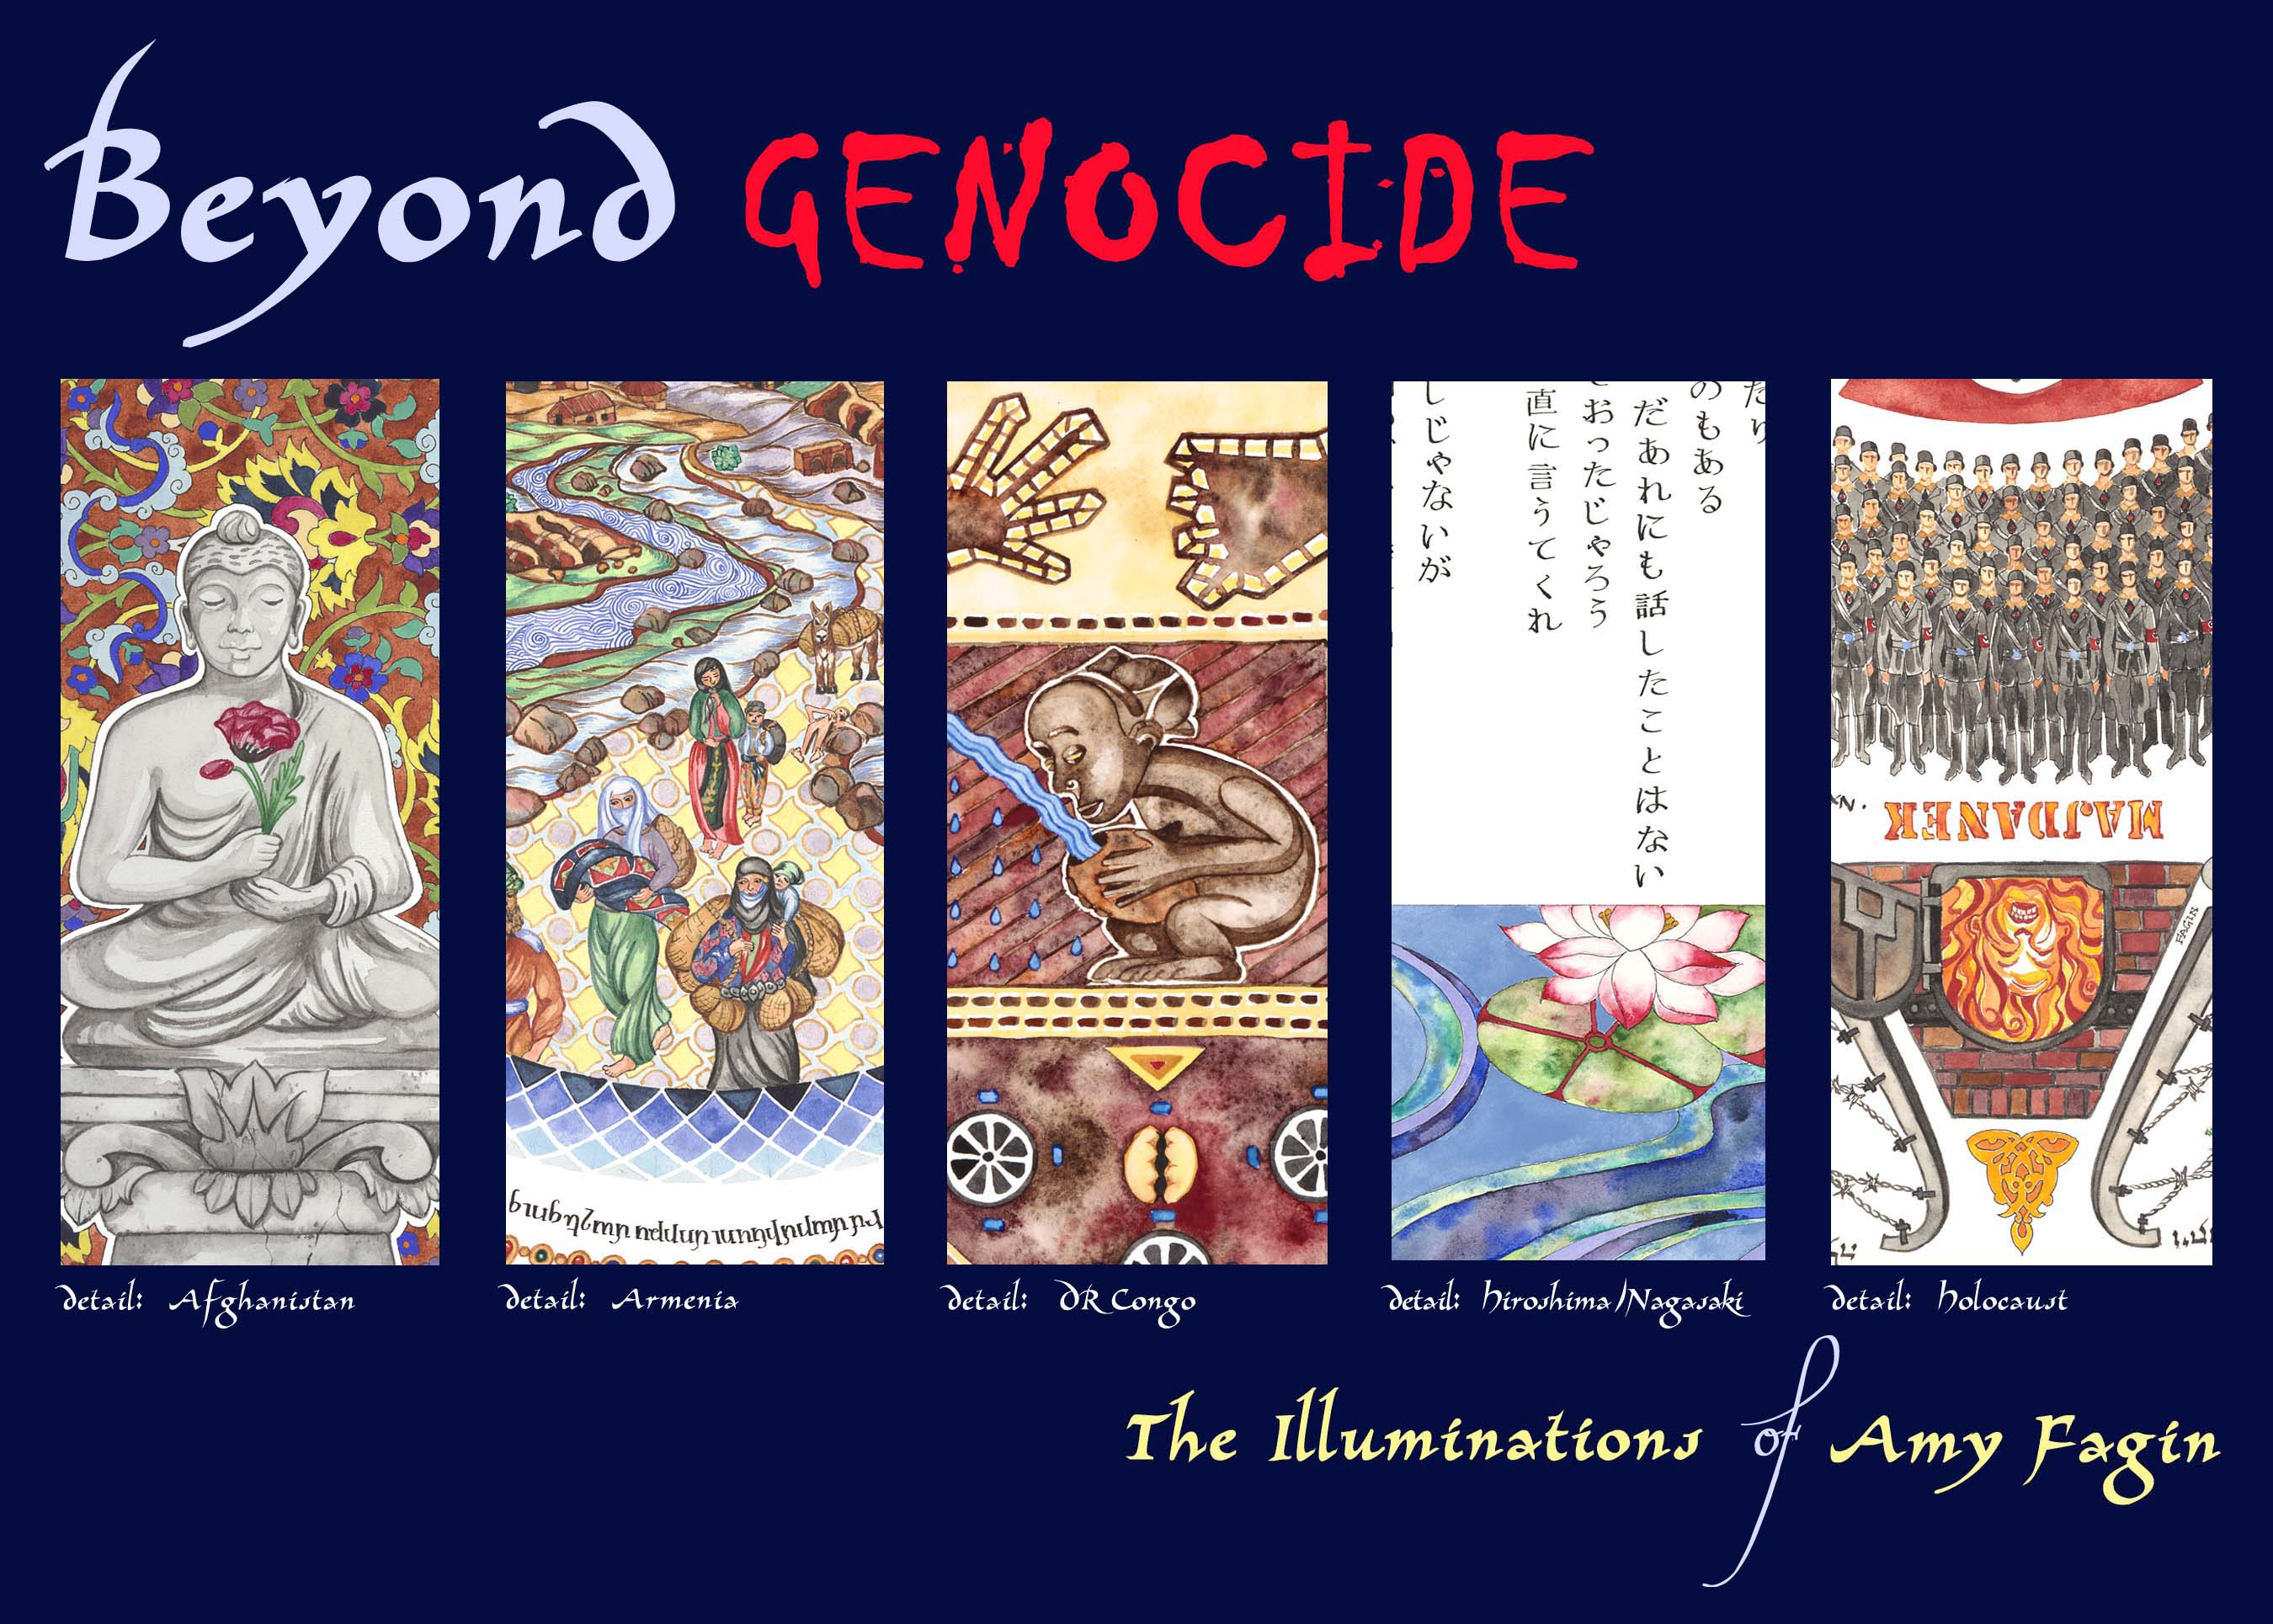 beyond genocide web ad